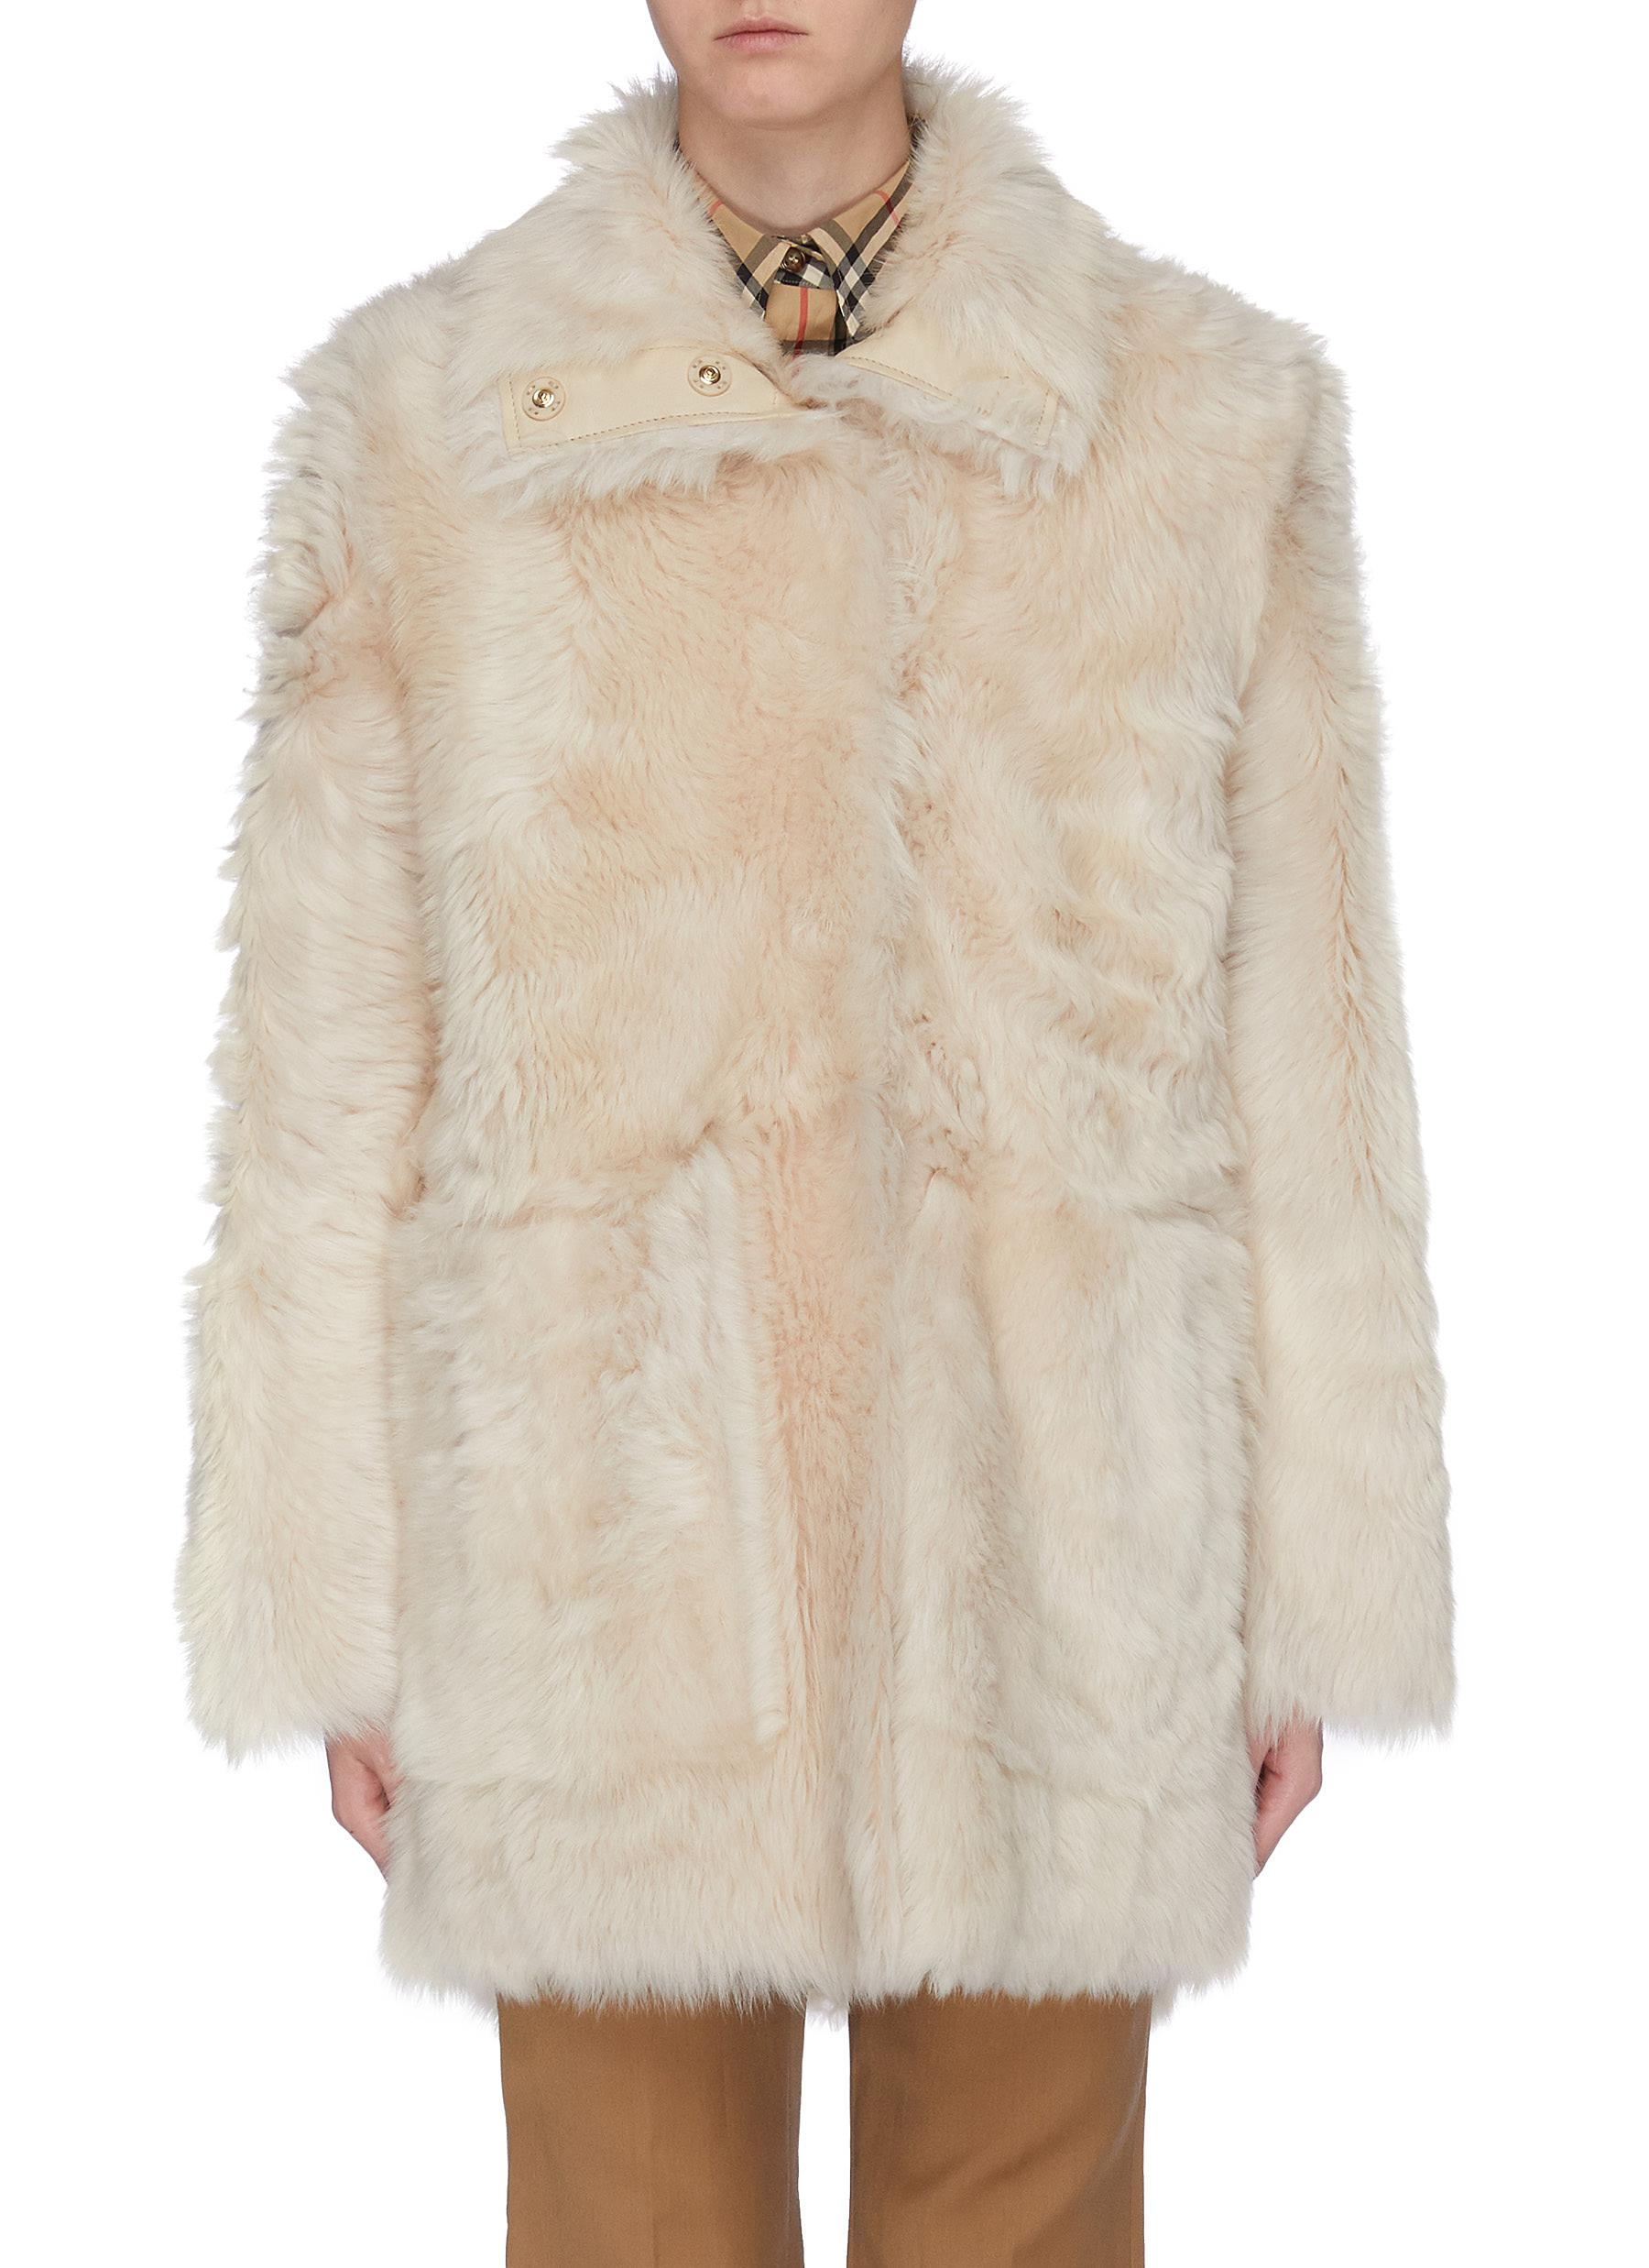 Reversible lambskin shearling coat by Yves Salomon